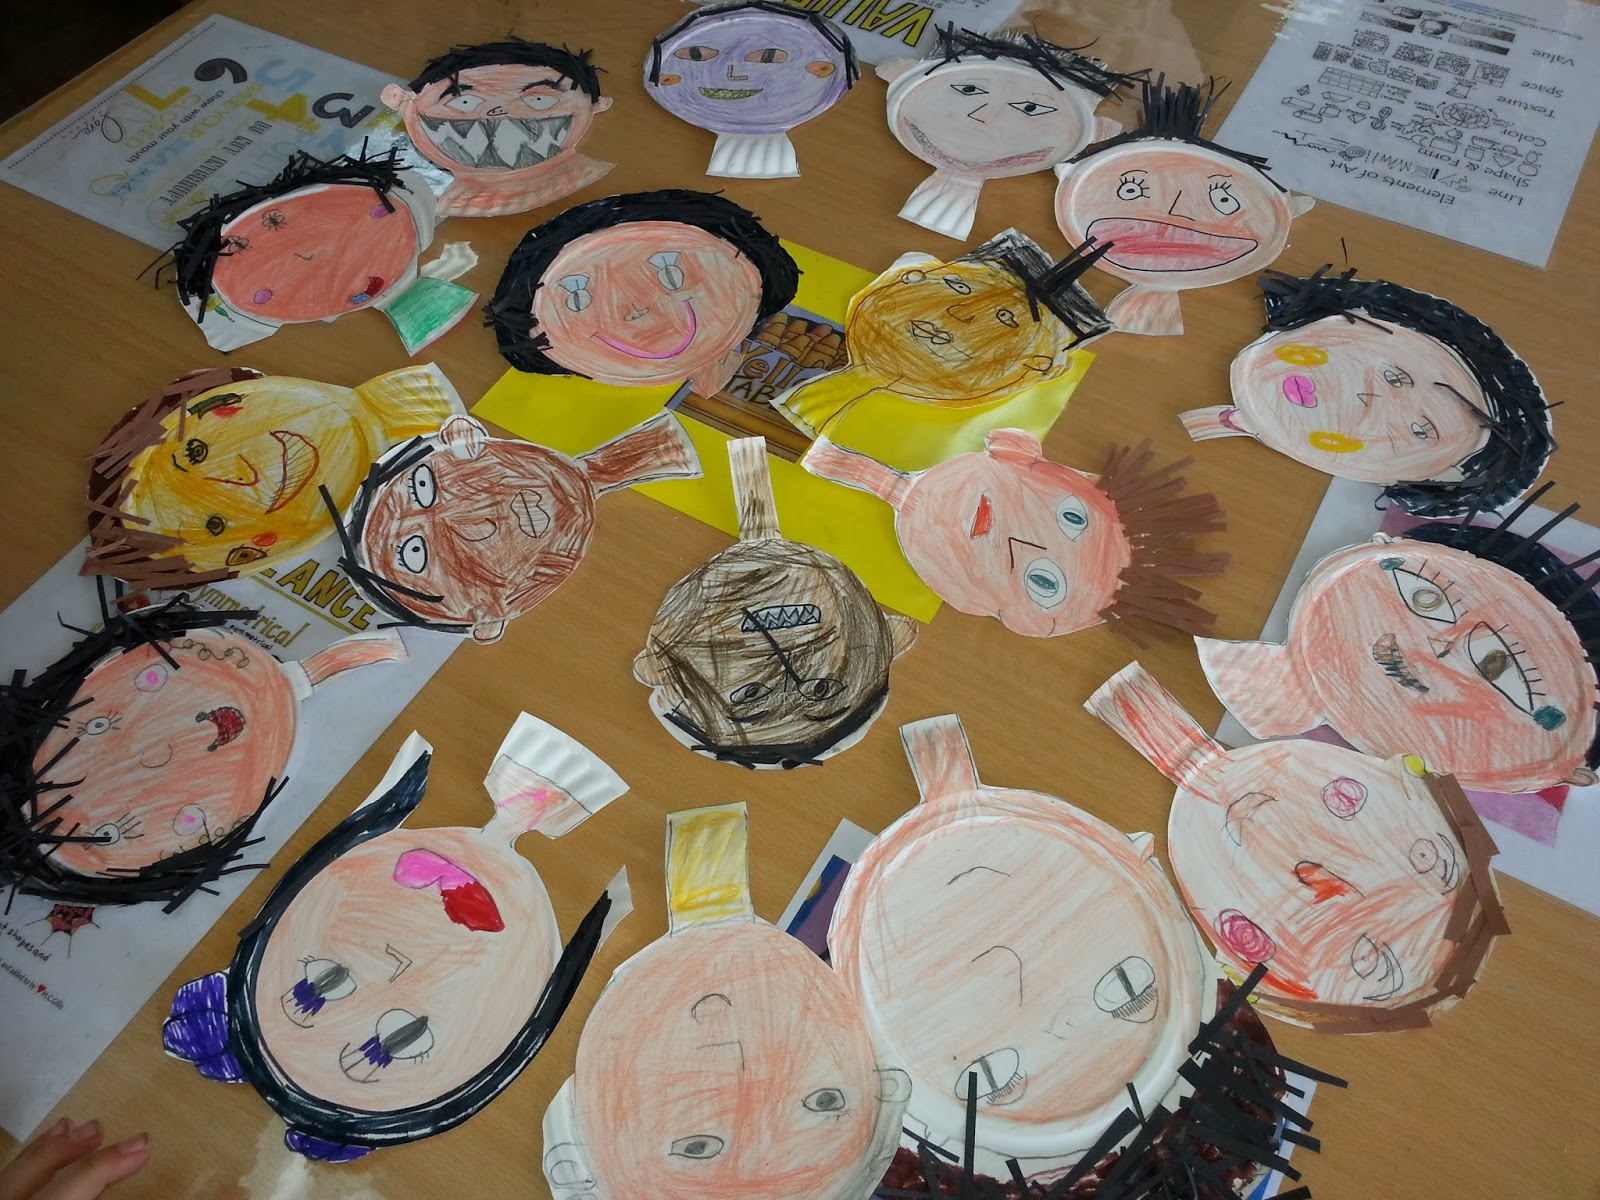 Our little ones made some self portraits out of paper plates and recycled paper. We had some very cute faces and some funny ones too. & Mrs.Berenice\u0027s Art Room: faces